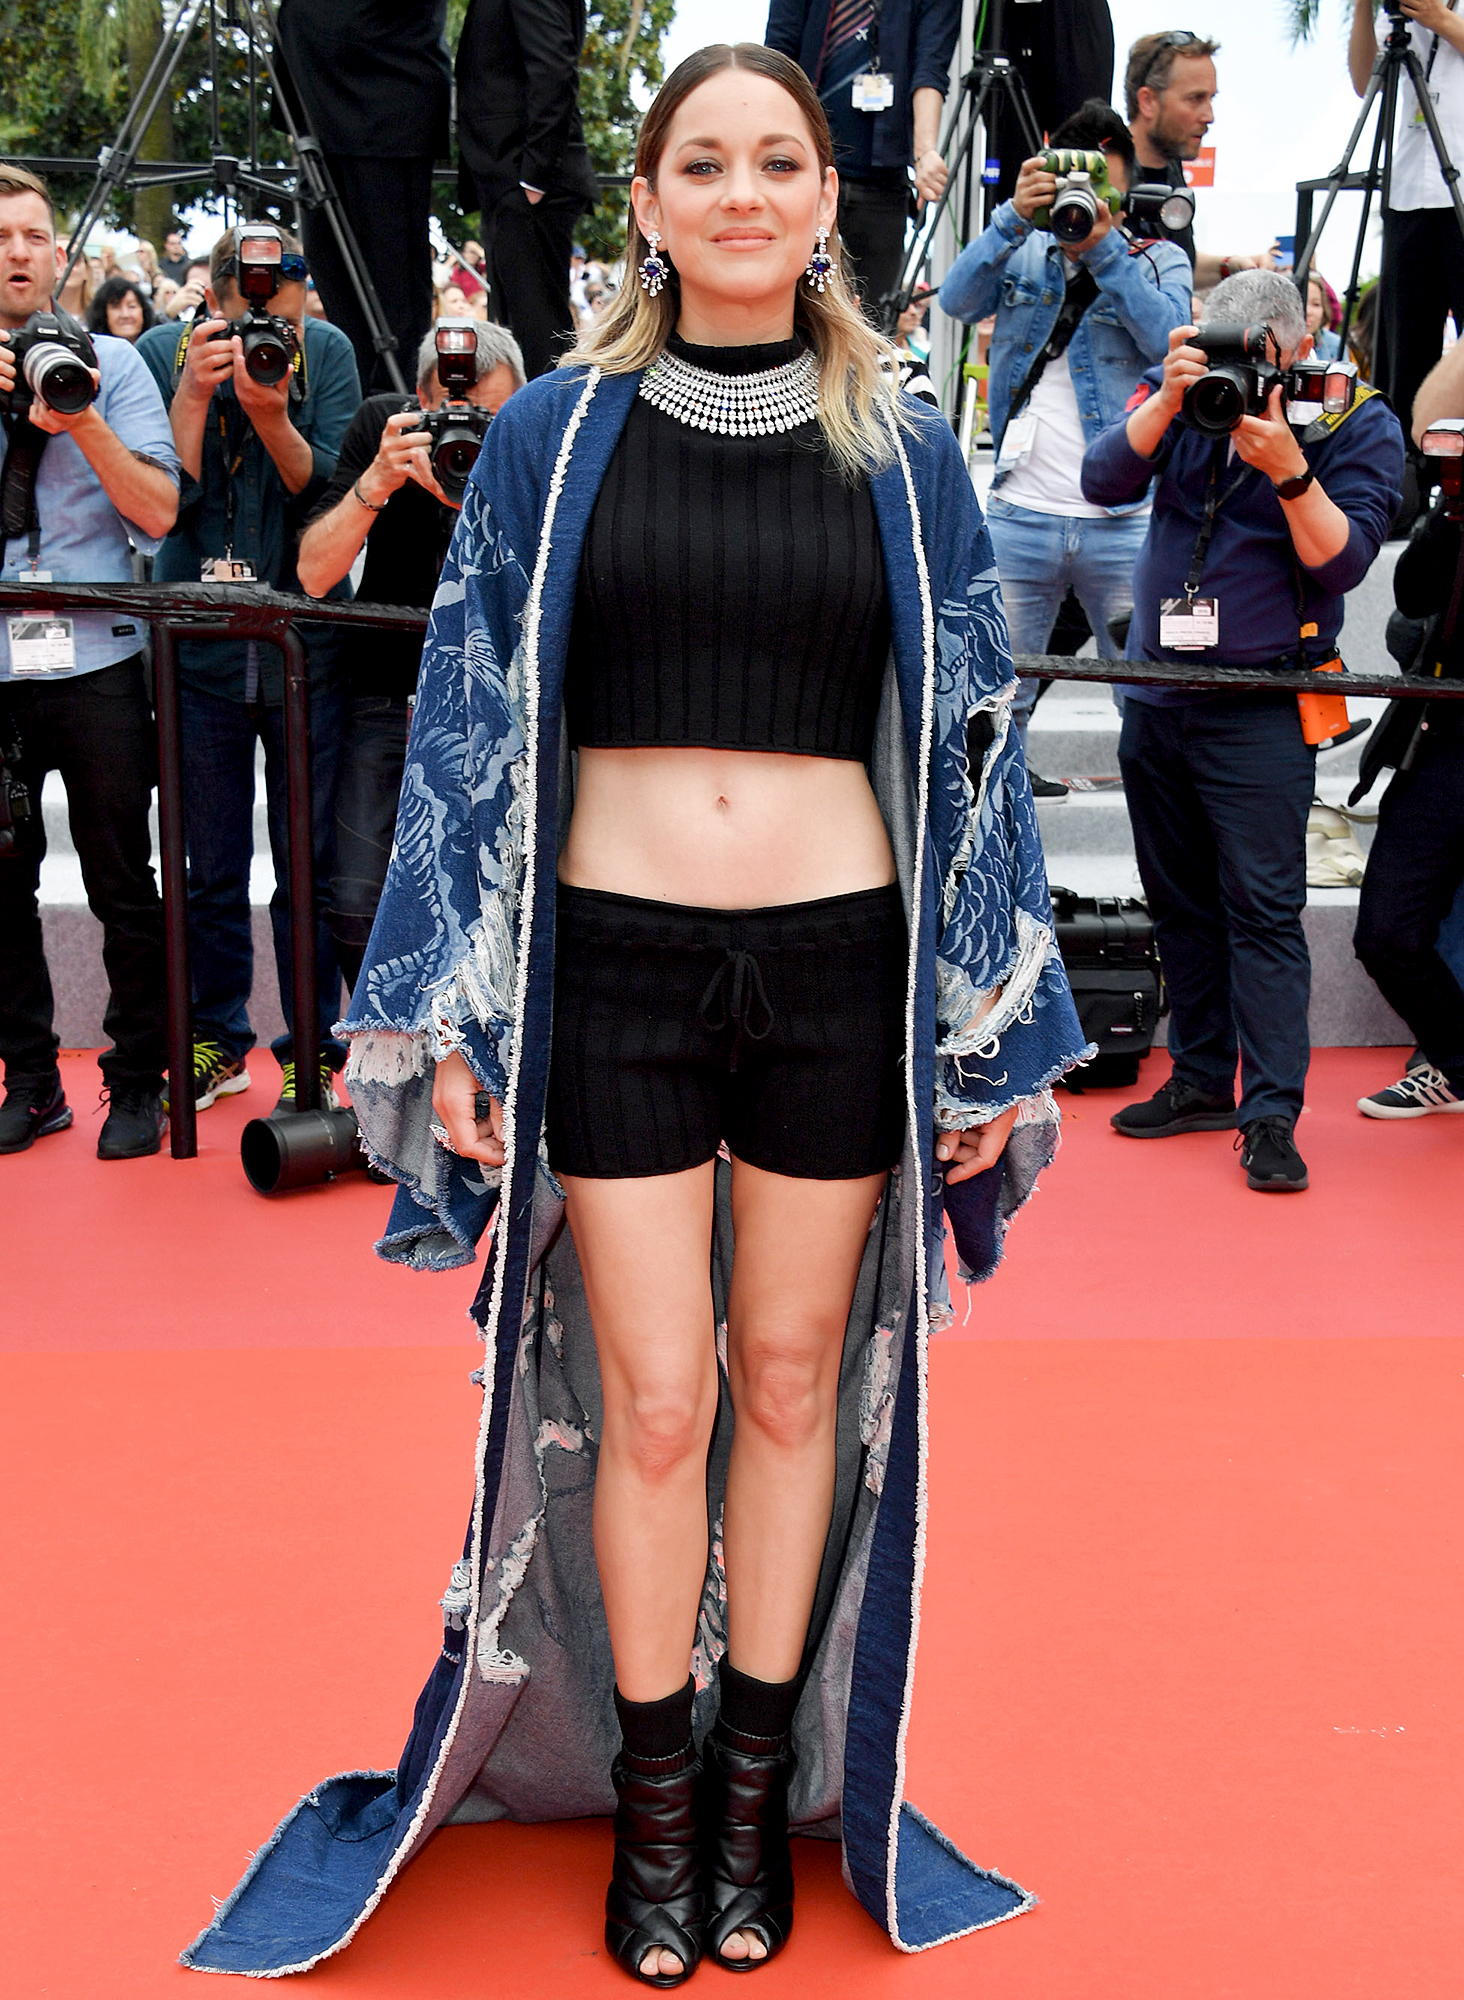 """Marion-Cotillard - CANNES, FRANCE – MAY 22: Marion Cotillard attends the screening of """"Matthias Et Maxime (Matthias and Maxime)"""" during the 72nd annual Cannes Film Festival on May 22, 2019 in Cannes, France. (Photo by George Pimentel/WireImage)"""